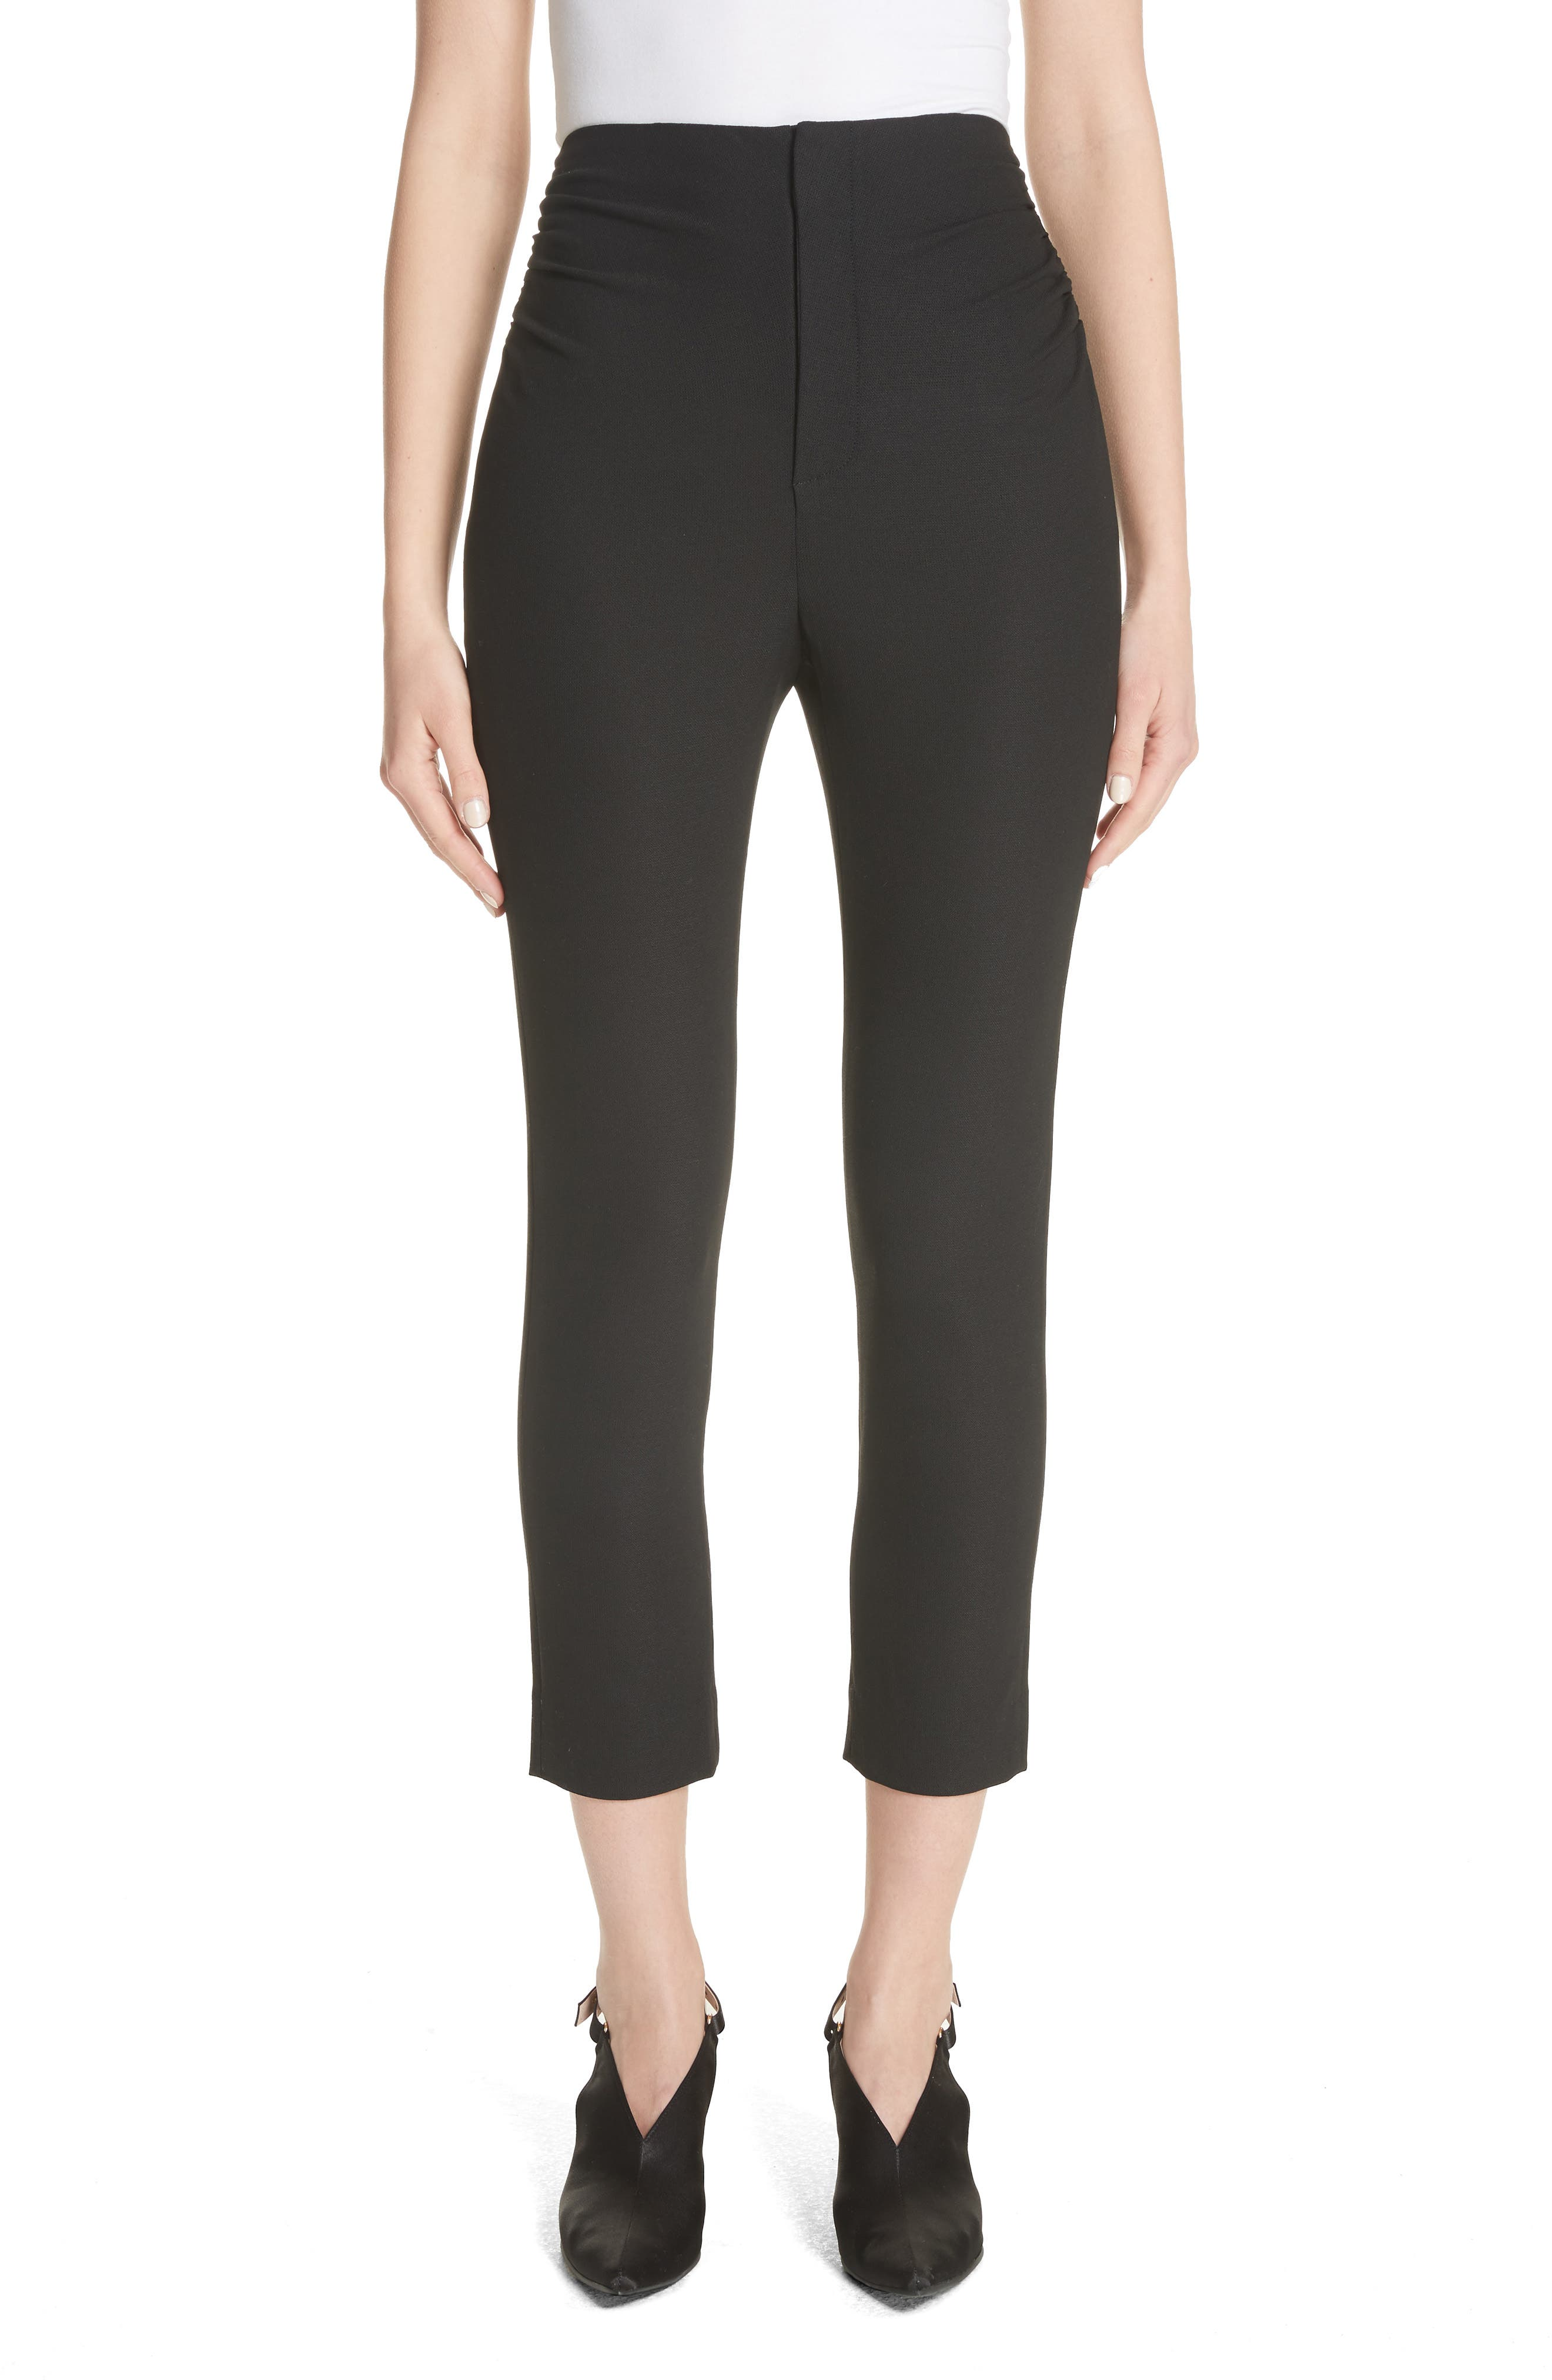 Le Corsaire Slim Crop Pants,                         Main,                         color, Black